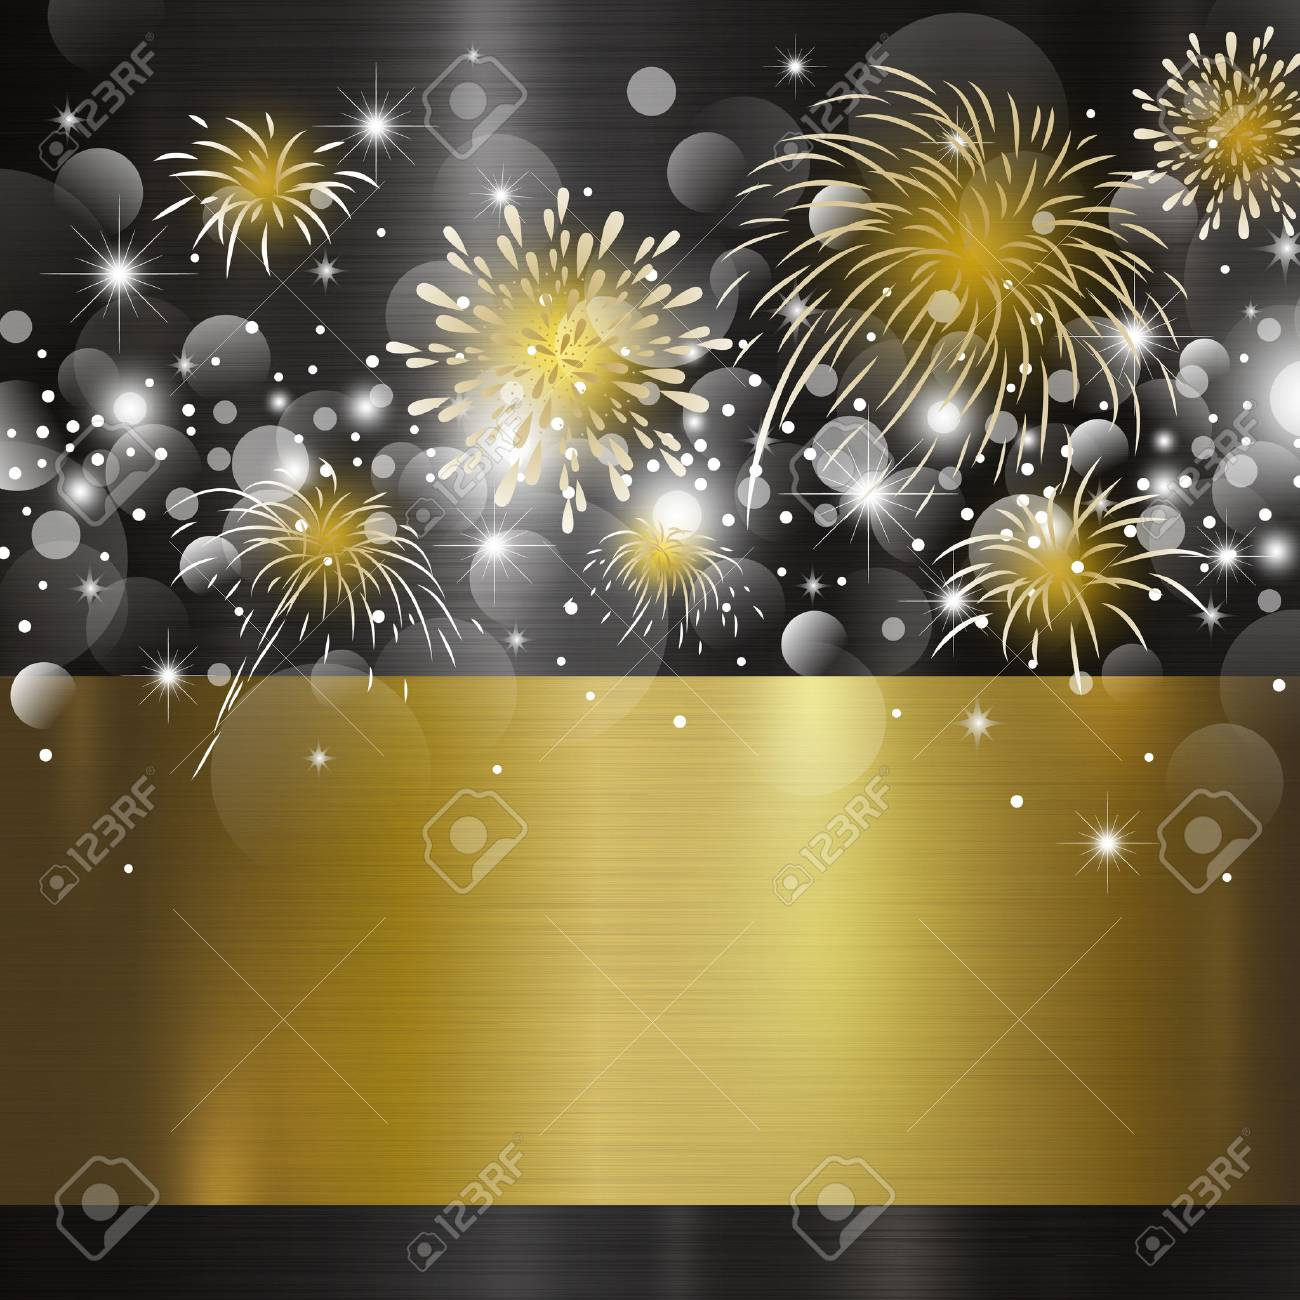 Happy new year design on metal background vector illustration - 90065243